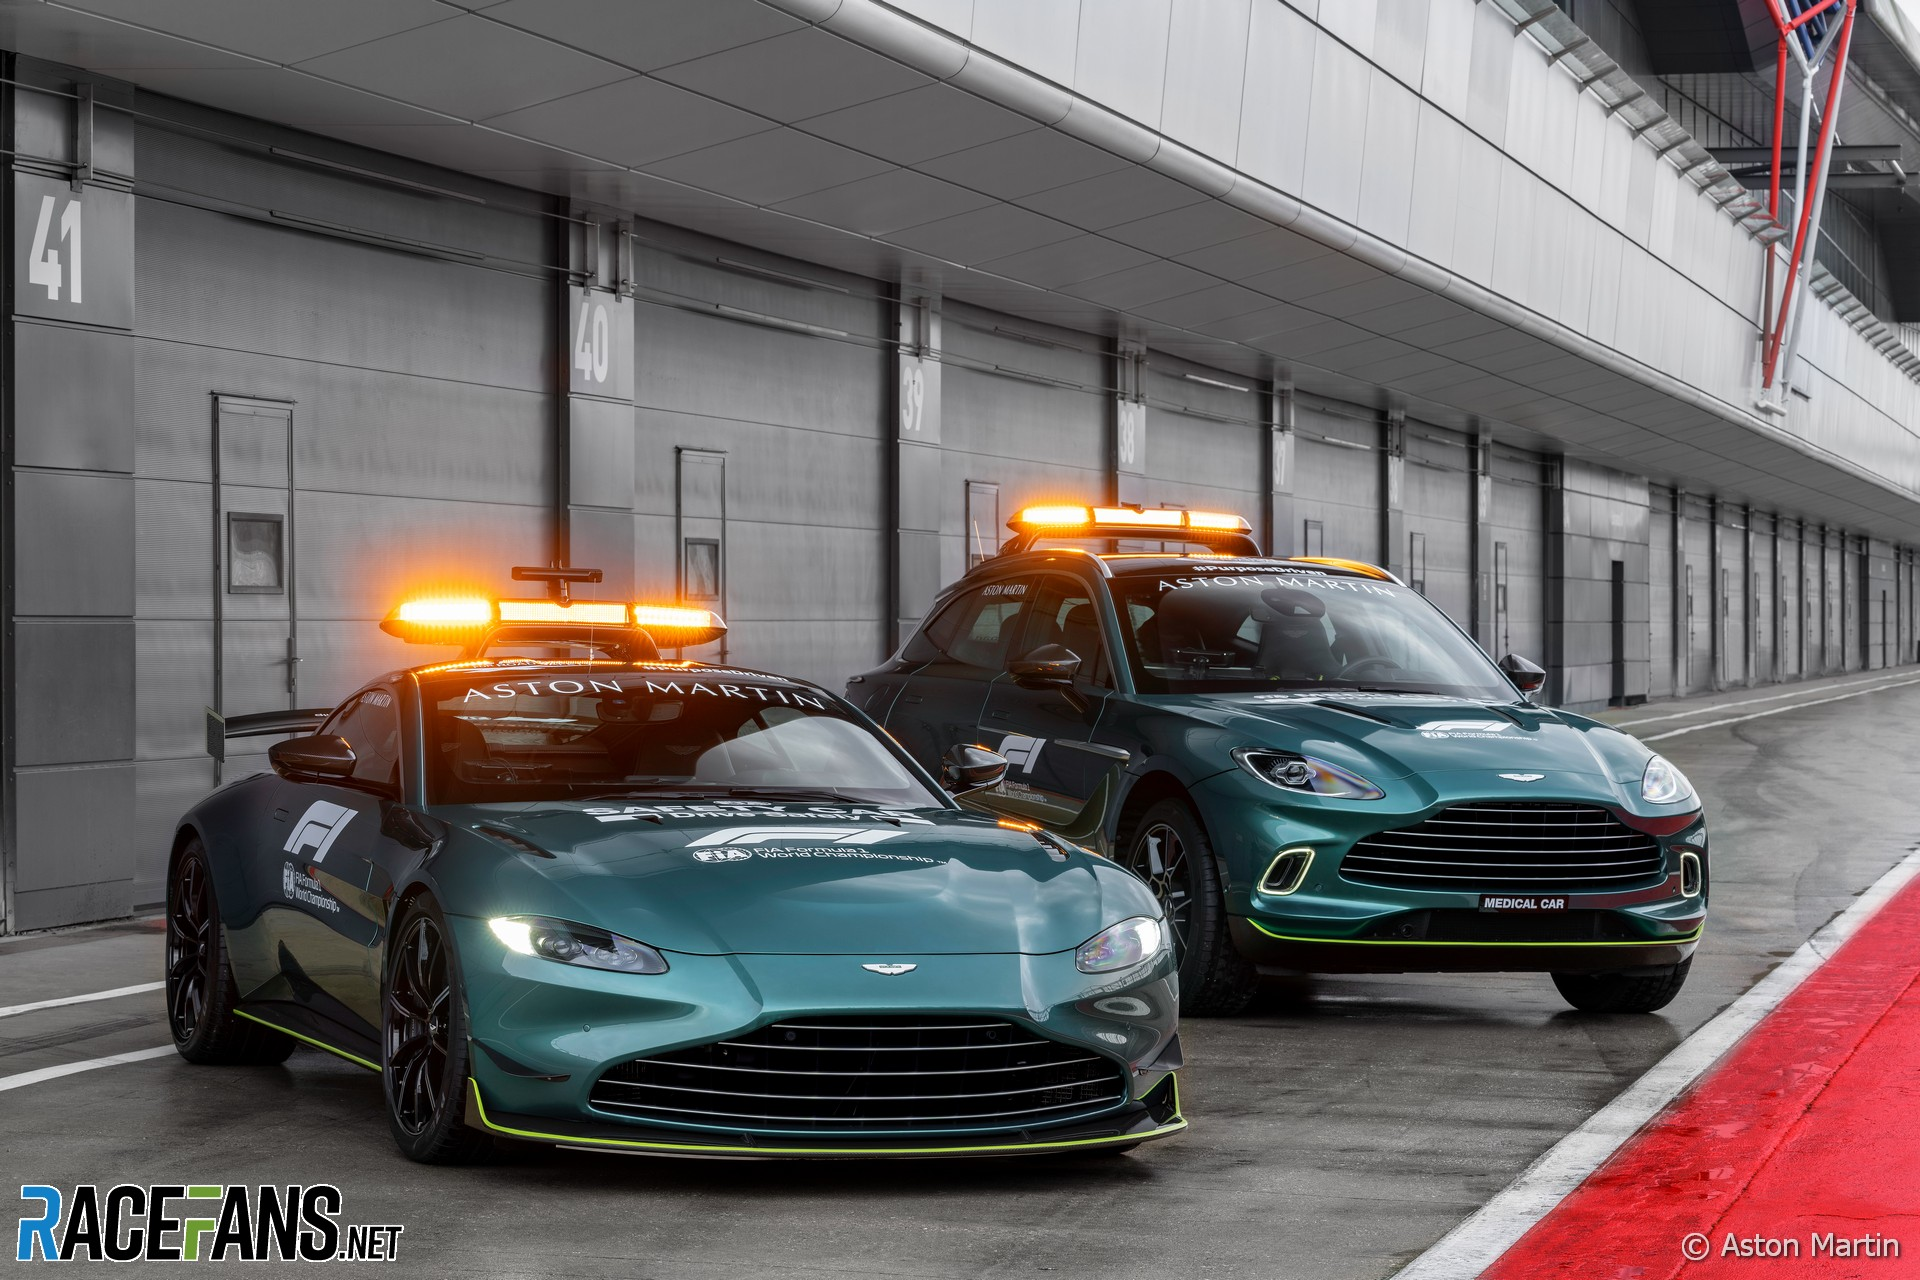 Aston Martin Safety Car and Medical Car